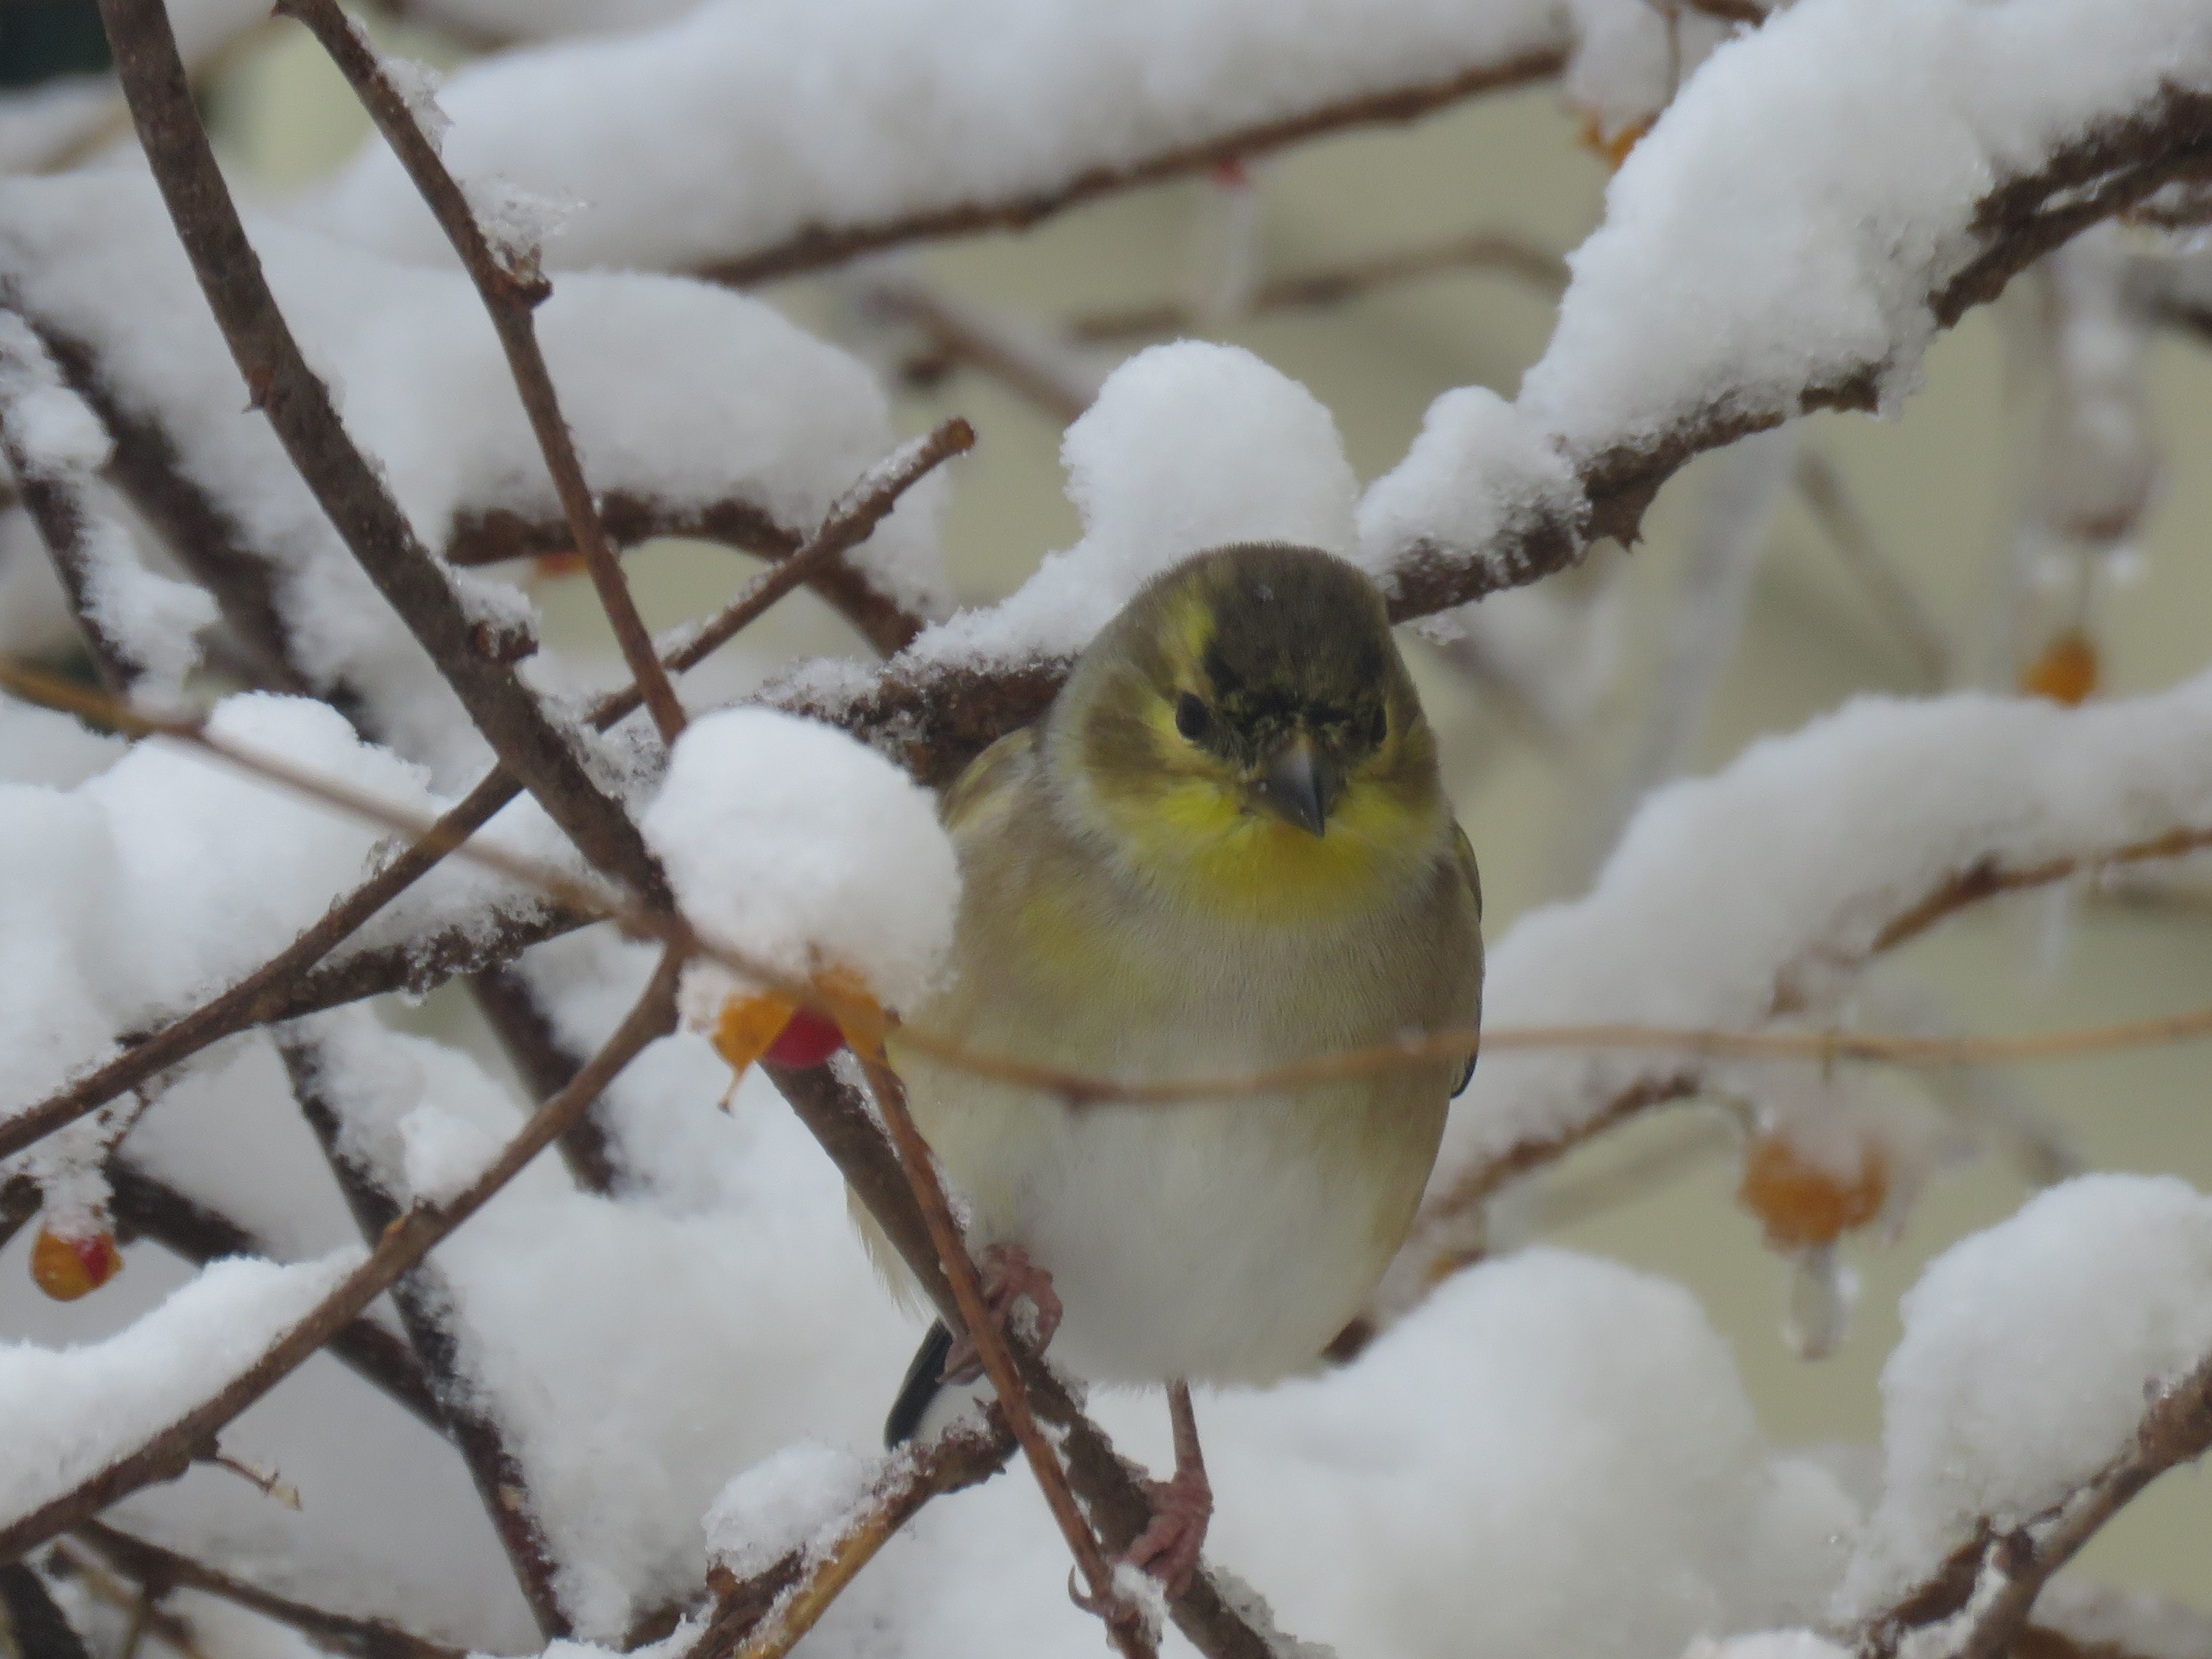 A small yellow finch sits on a branch in a bush that is covered with tufts of snow. Small yellow and red berries hang from the bush.